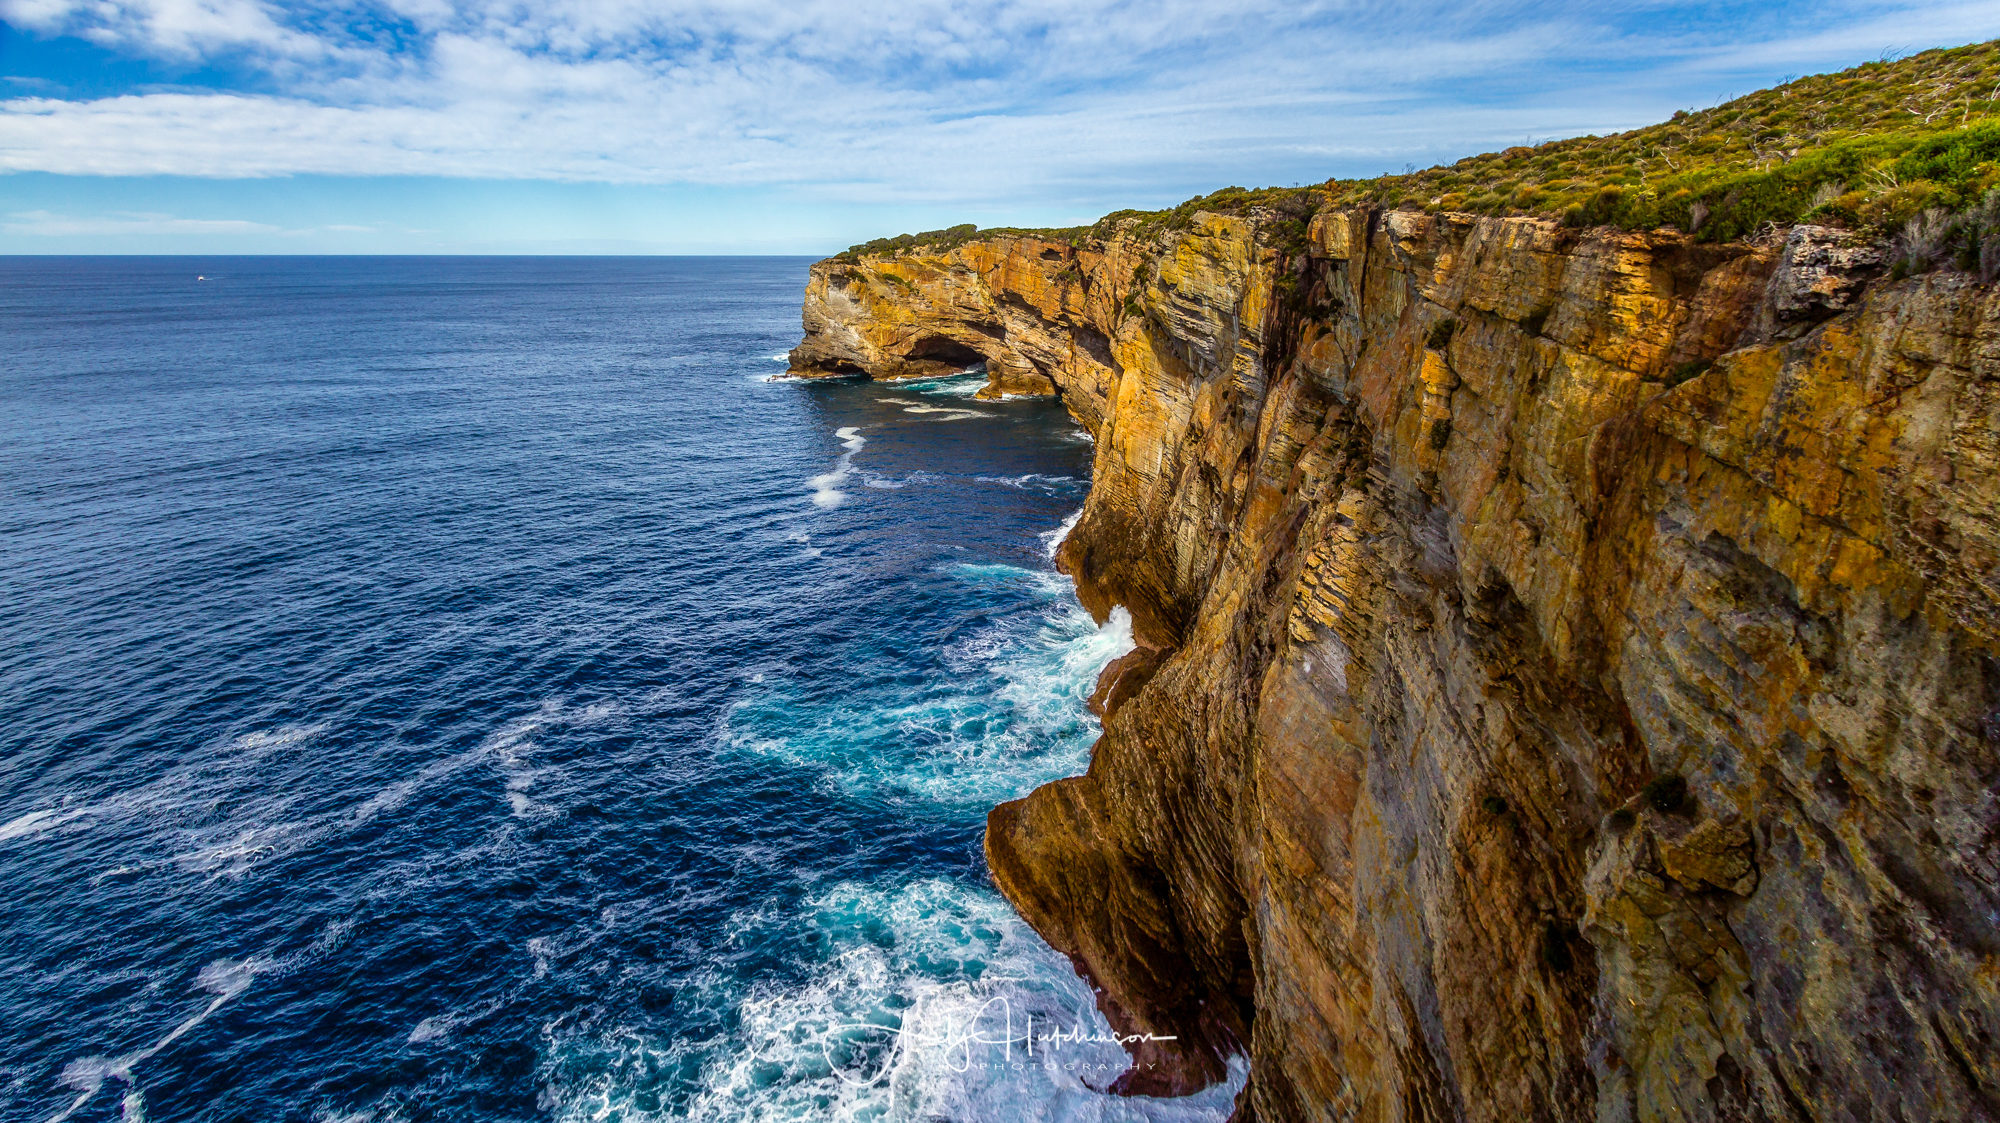 Another Snapper Point - this time in the Jervis Bay Marine Park where the cliffs and sea-caves are made from 280million year old rock and are home to seals and penguins.